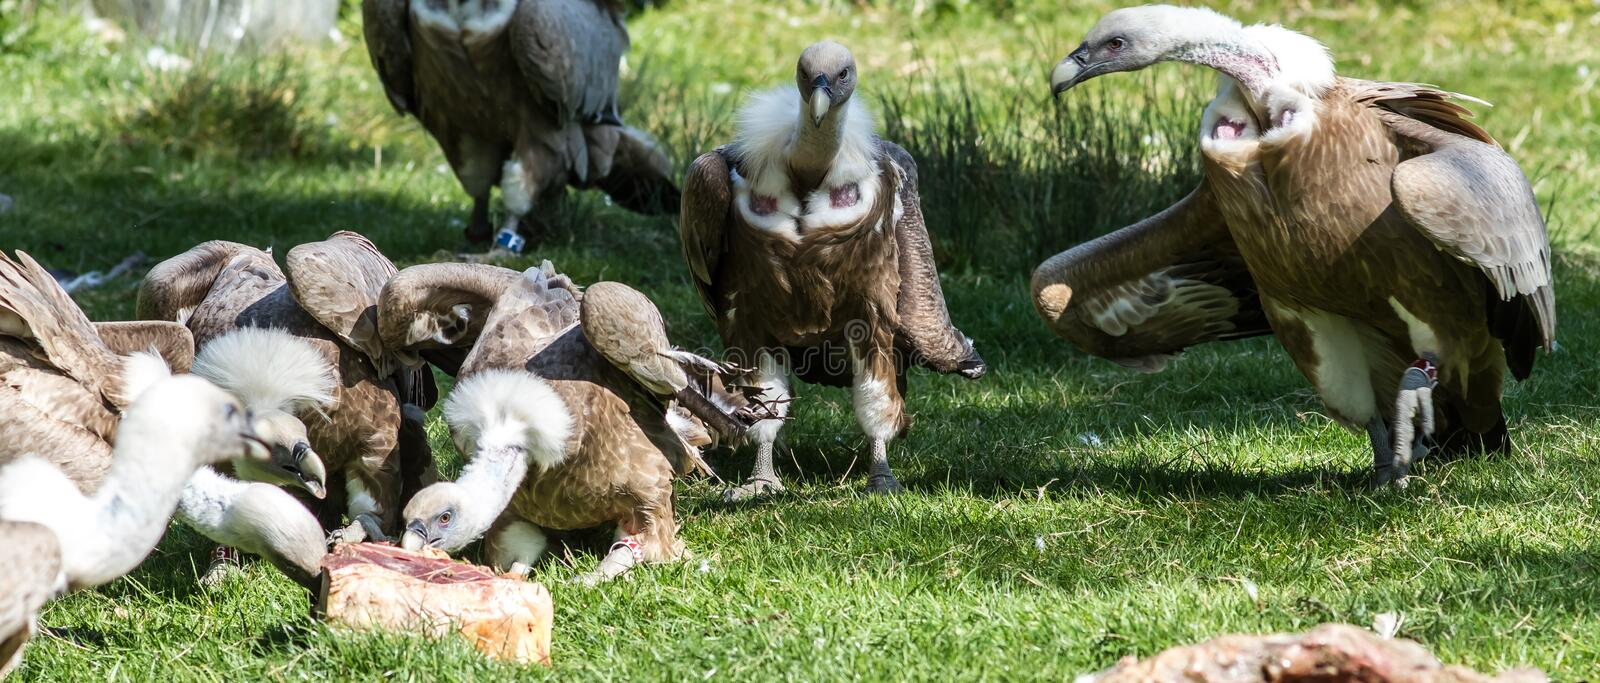 European Griffon Vultures in group of large scavenger birds eatin royalty free stock photo